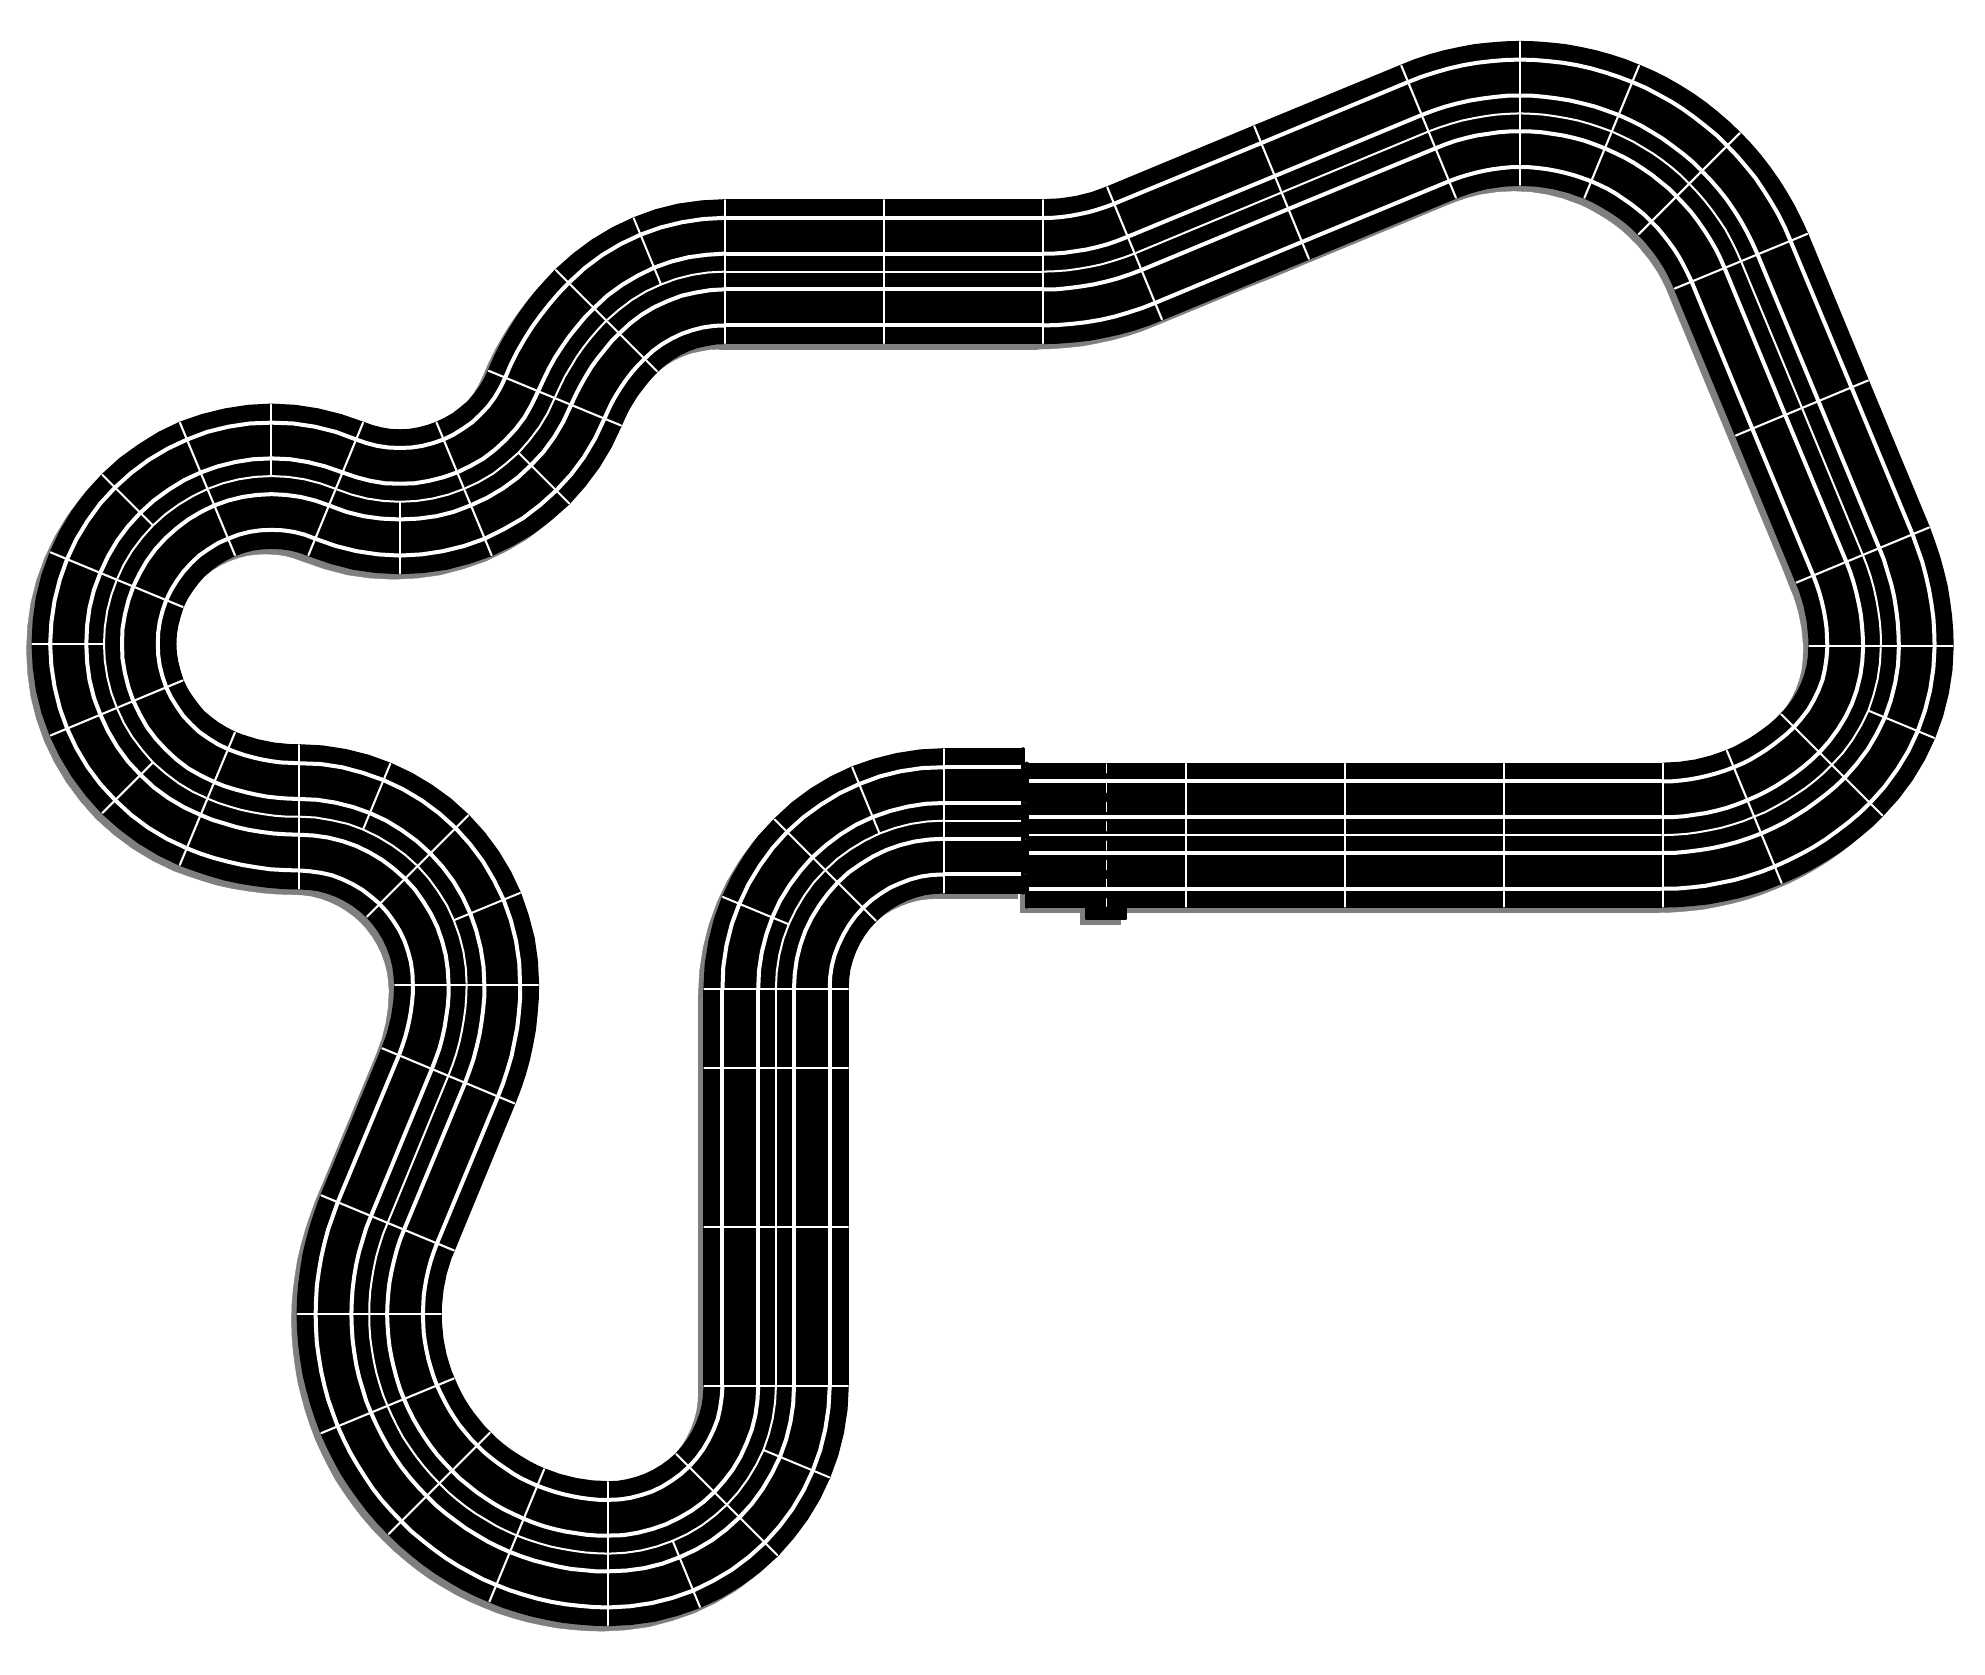 Willow Springs International Motorsports Park is located in Willow Springs near Rosamond and Lancaster, California,